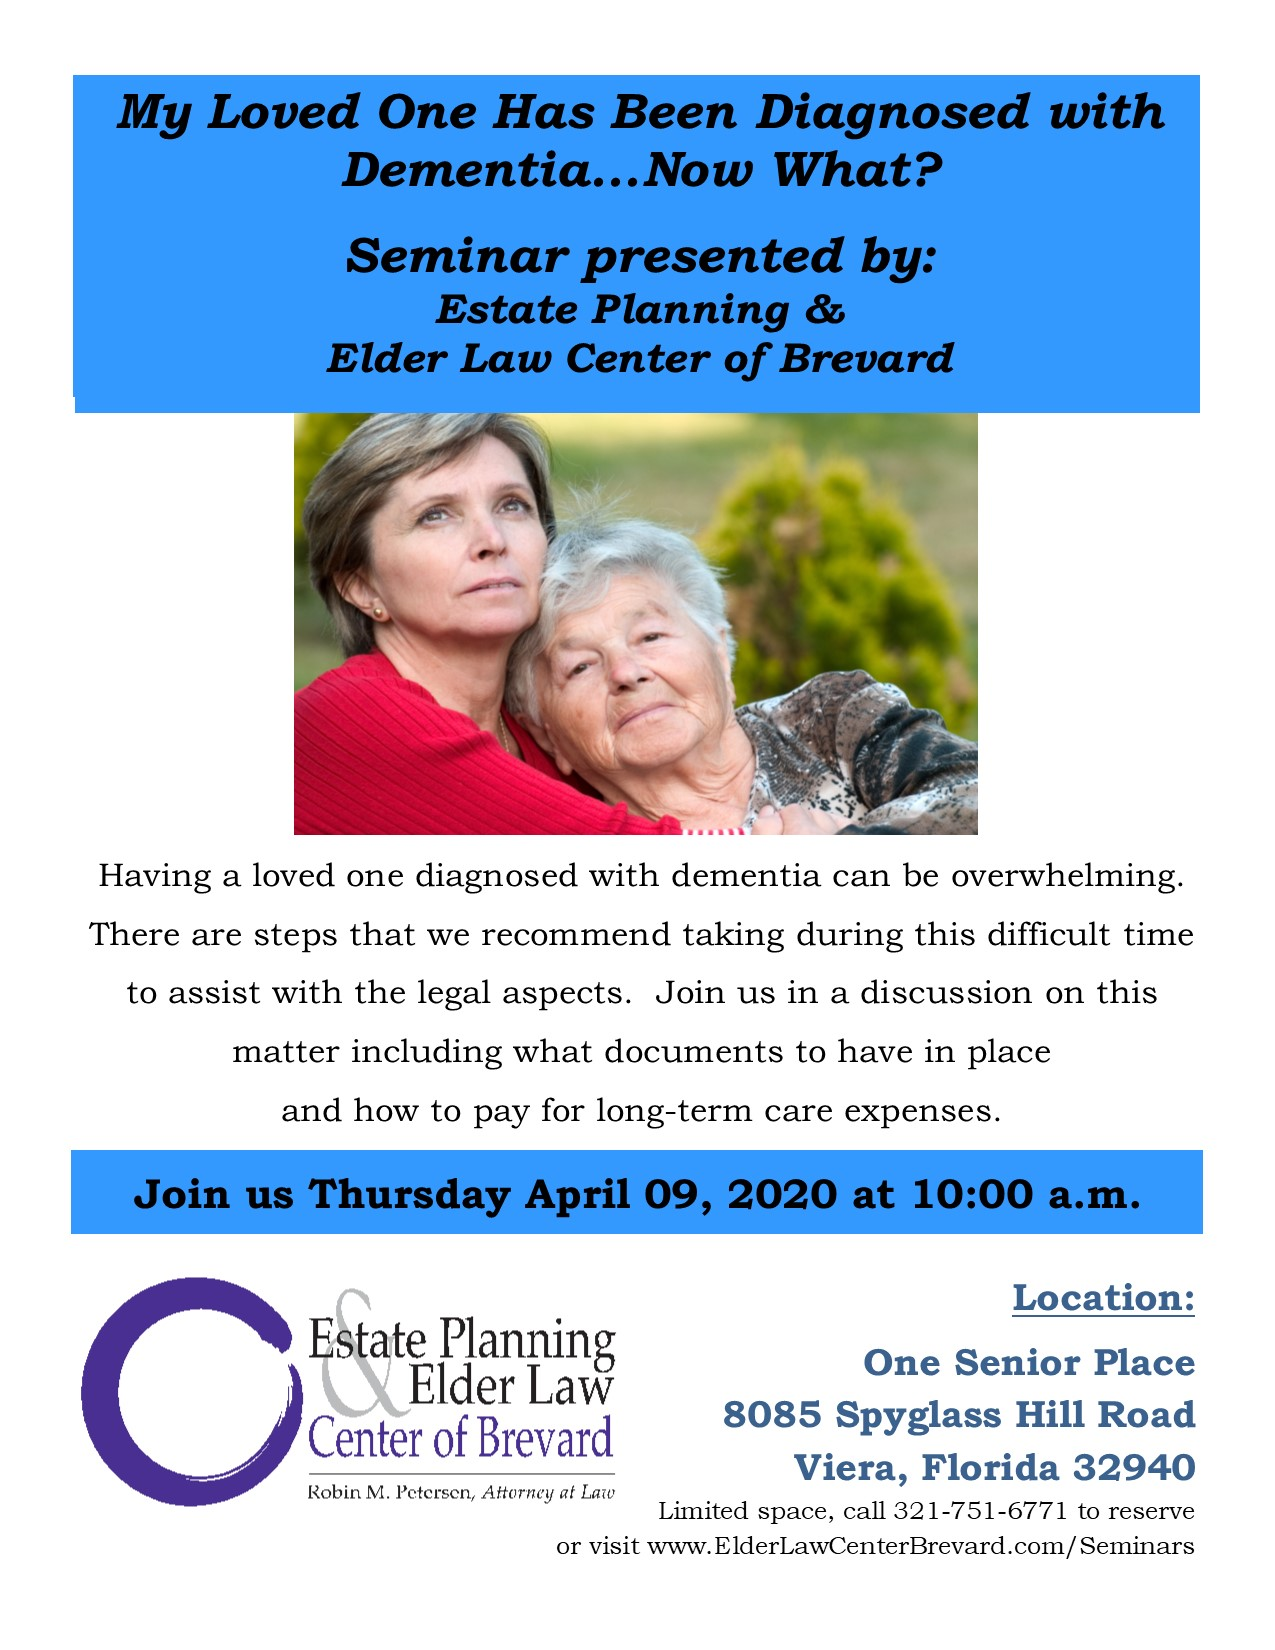 CANCELLED - My Loved One Has Been Diagnosed with Dementia...Now What? by: Estate Planning and Elder Law Center of Brevard